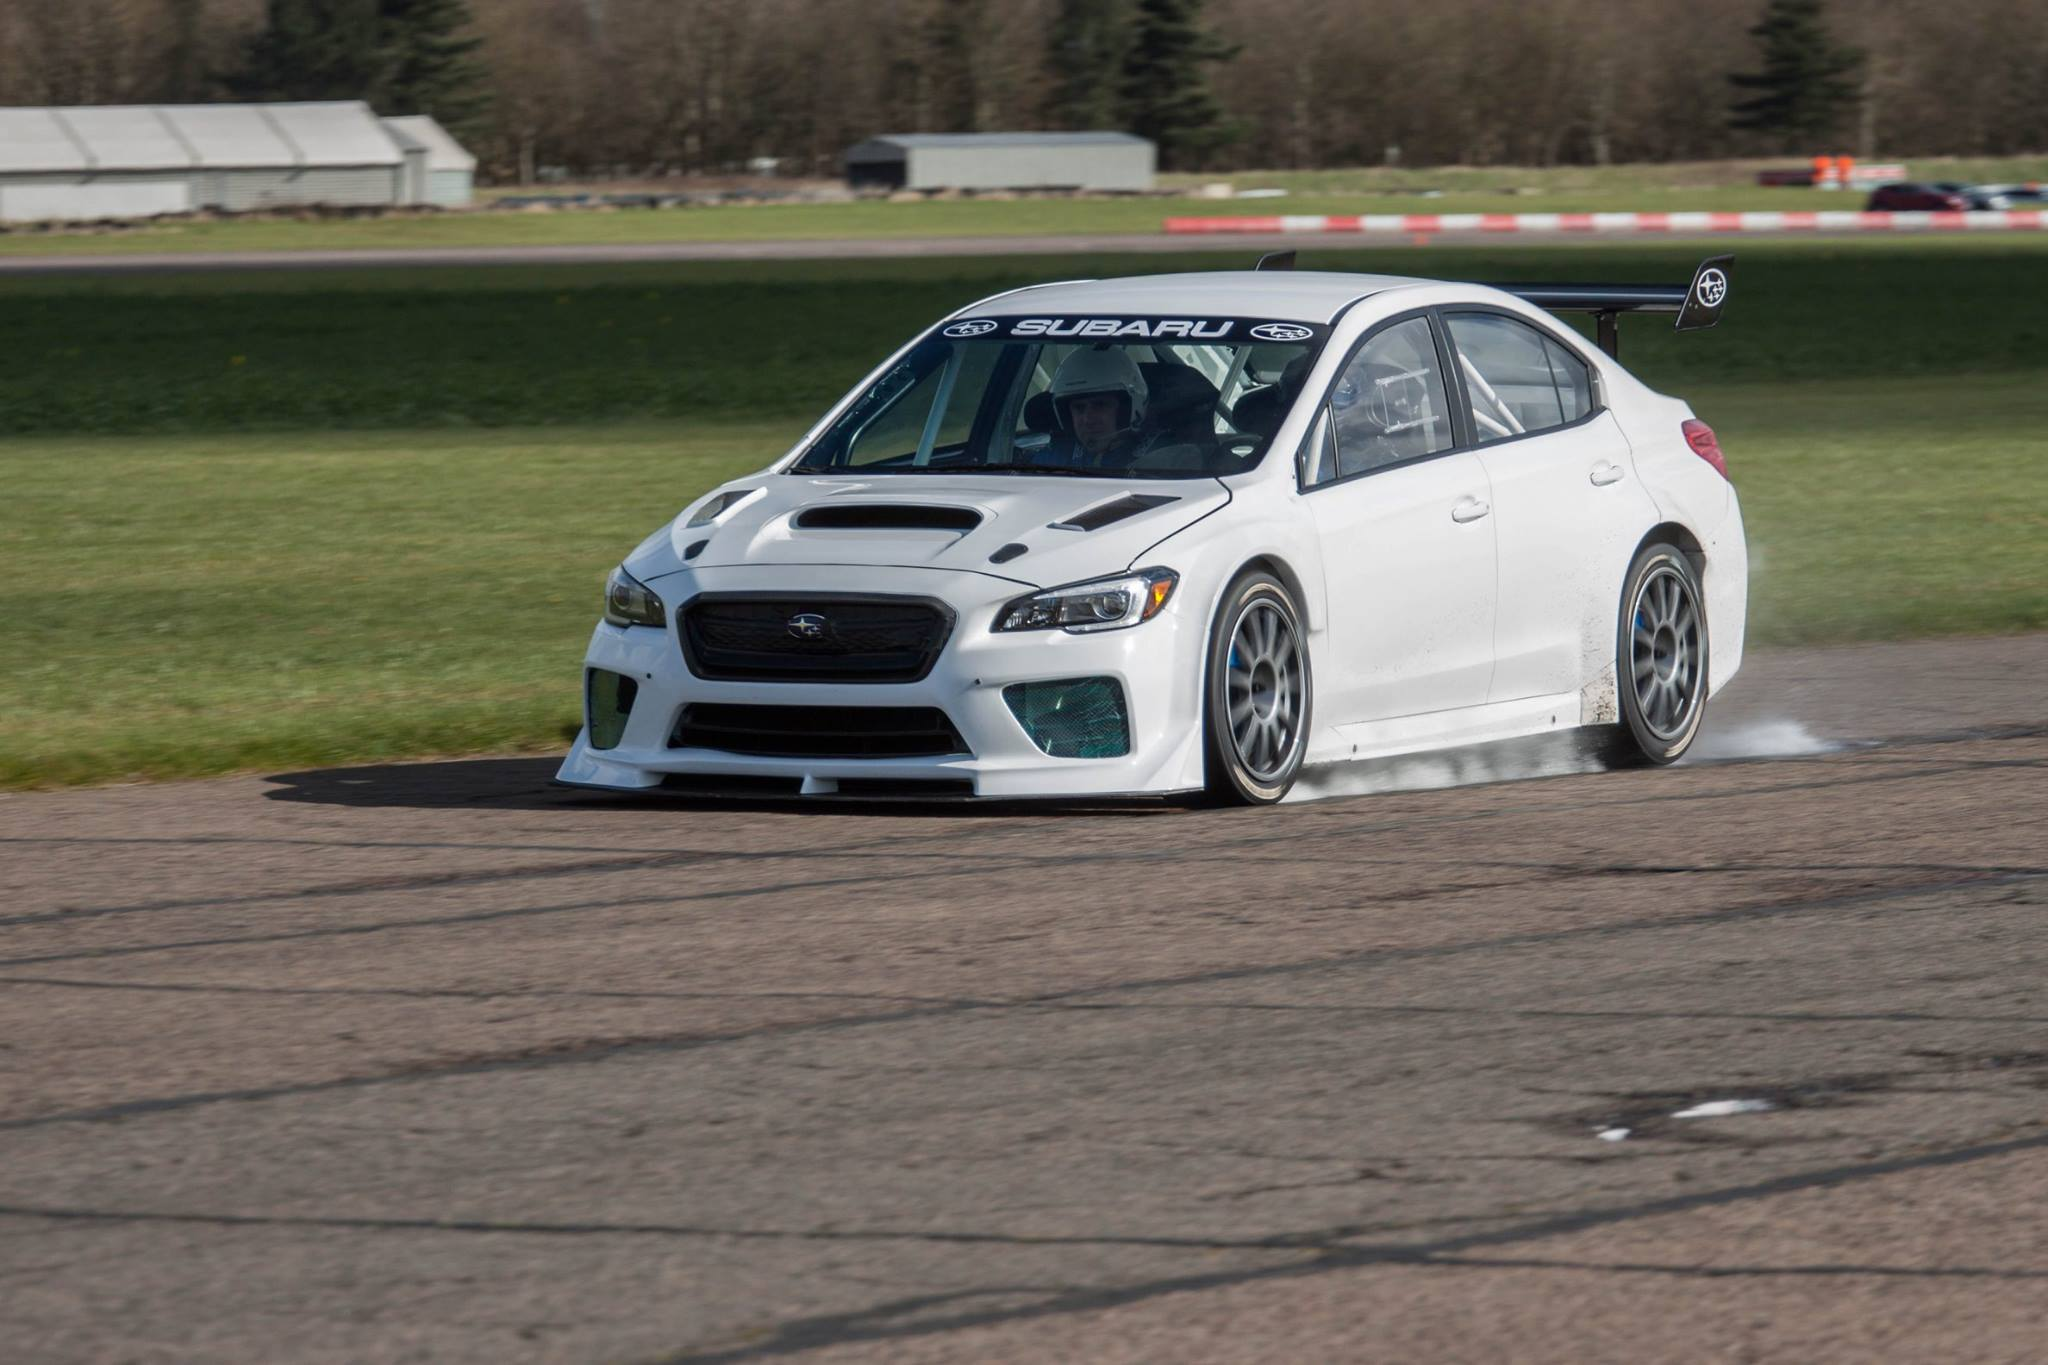 2016 Subaru WRX STI Isle of Man Edition by Prodrive - GTspirit